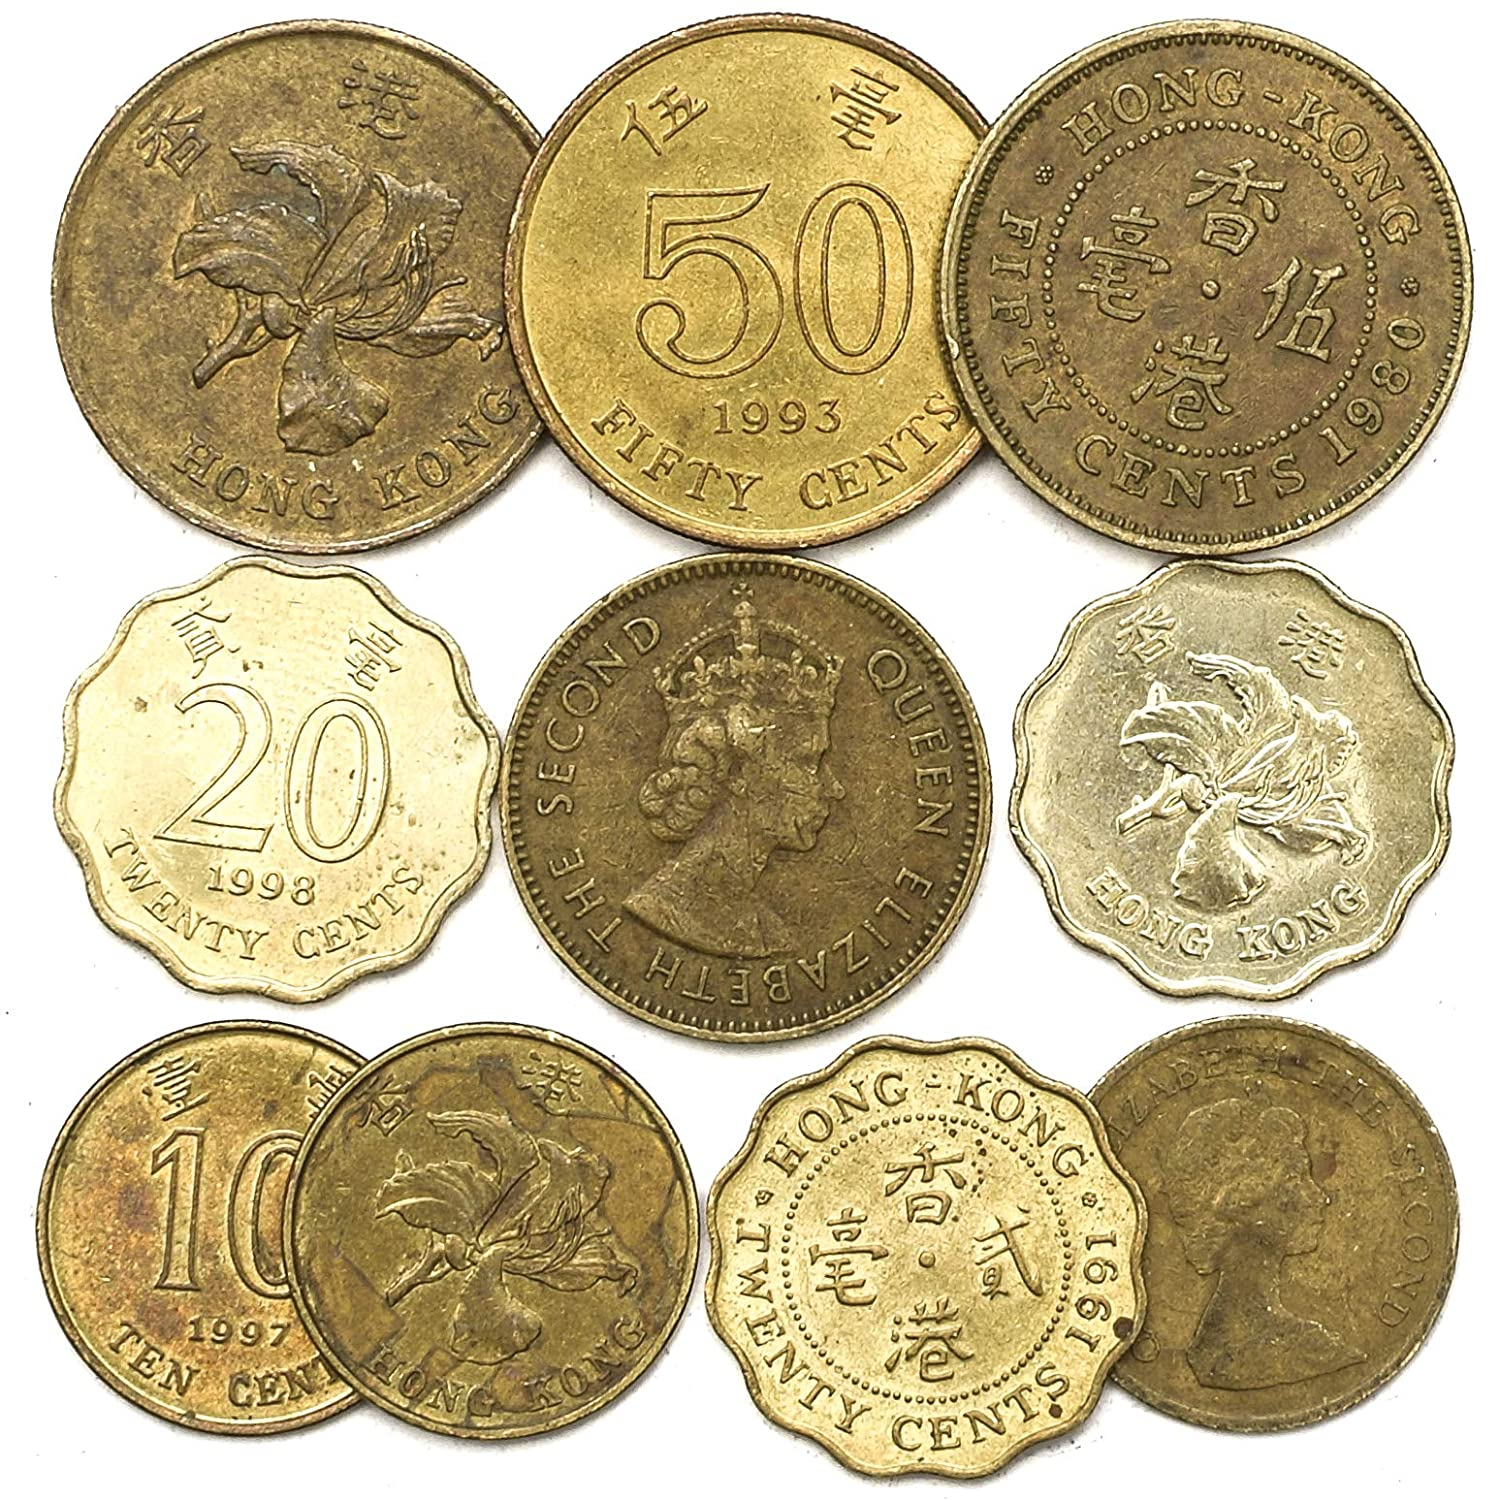 10 Old Coins from Hong Kong  Coins from Southern Asia – The Special  Administrative Region of The People's Republic of China  Collectible Coins  Cents